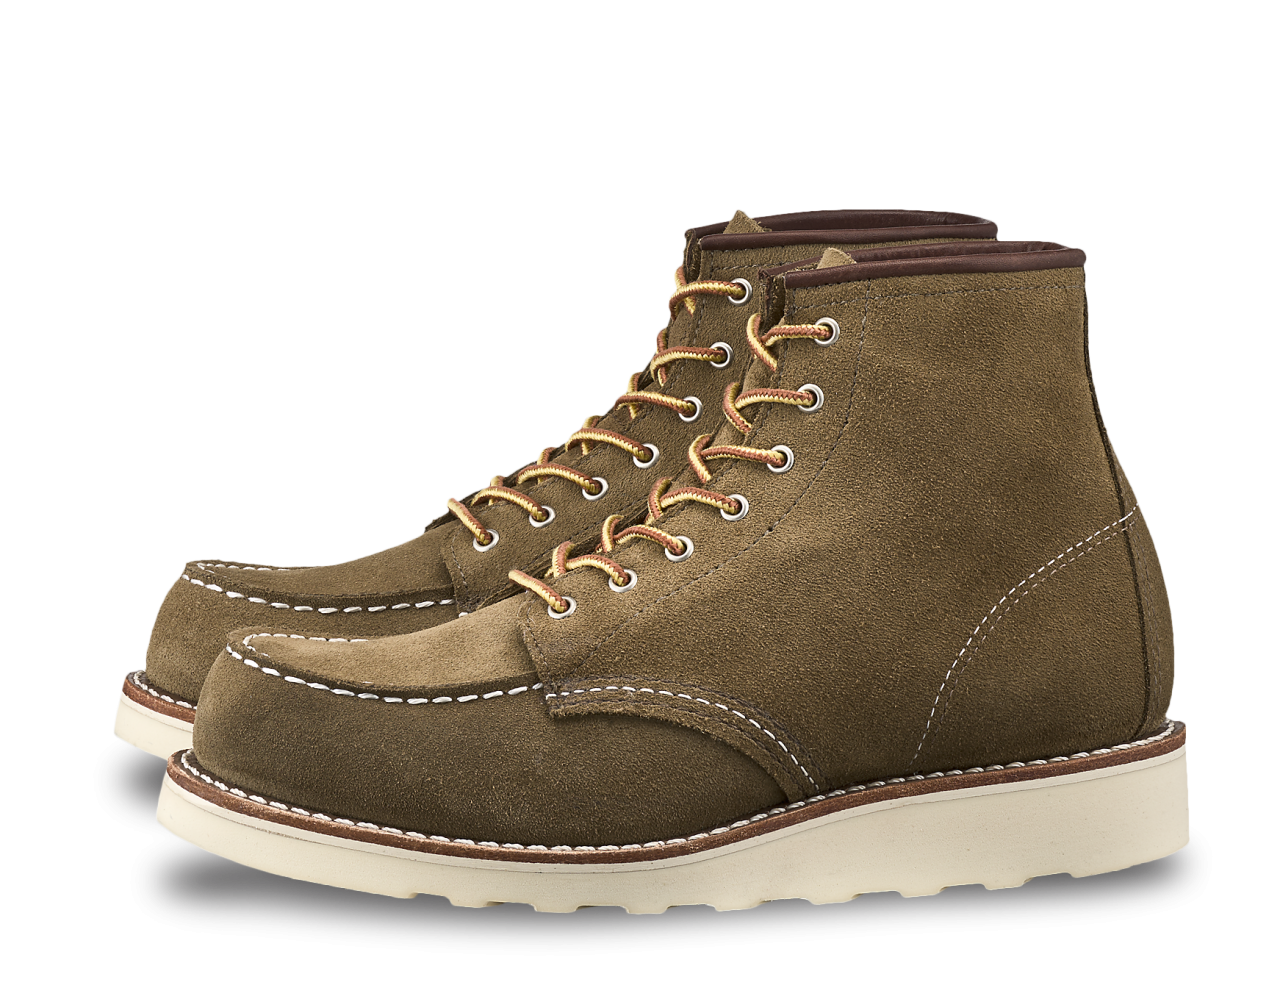 Red Wing 3377 Moc Toe